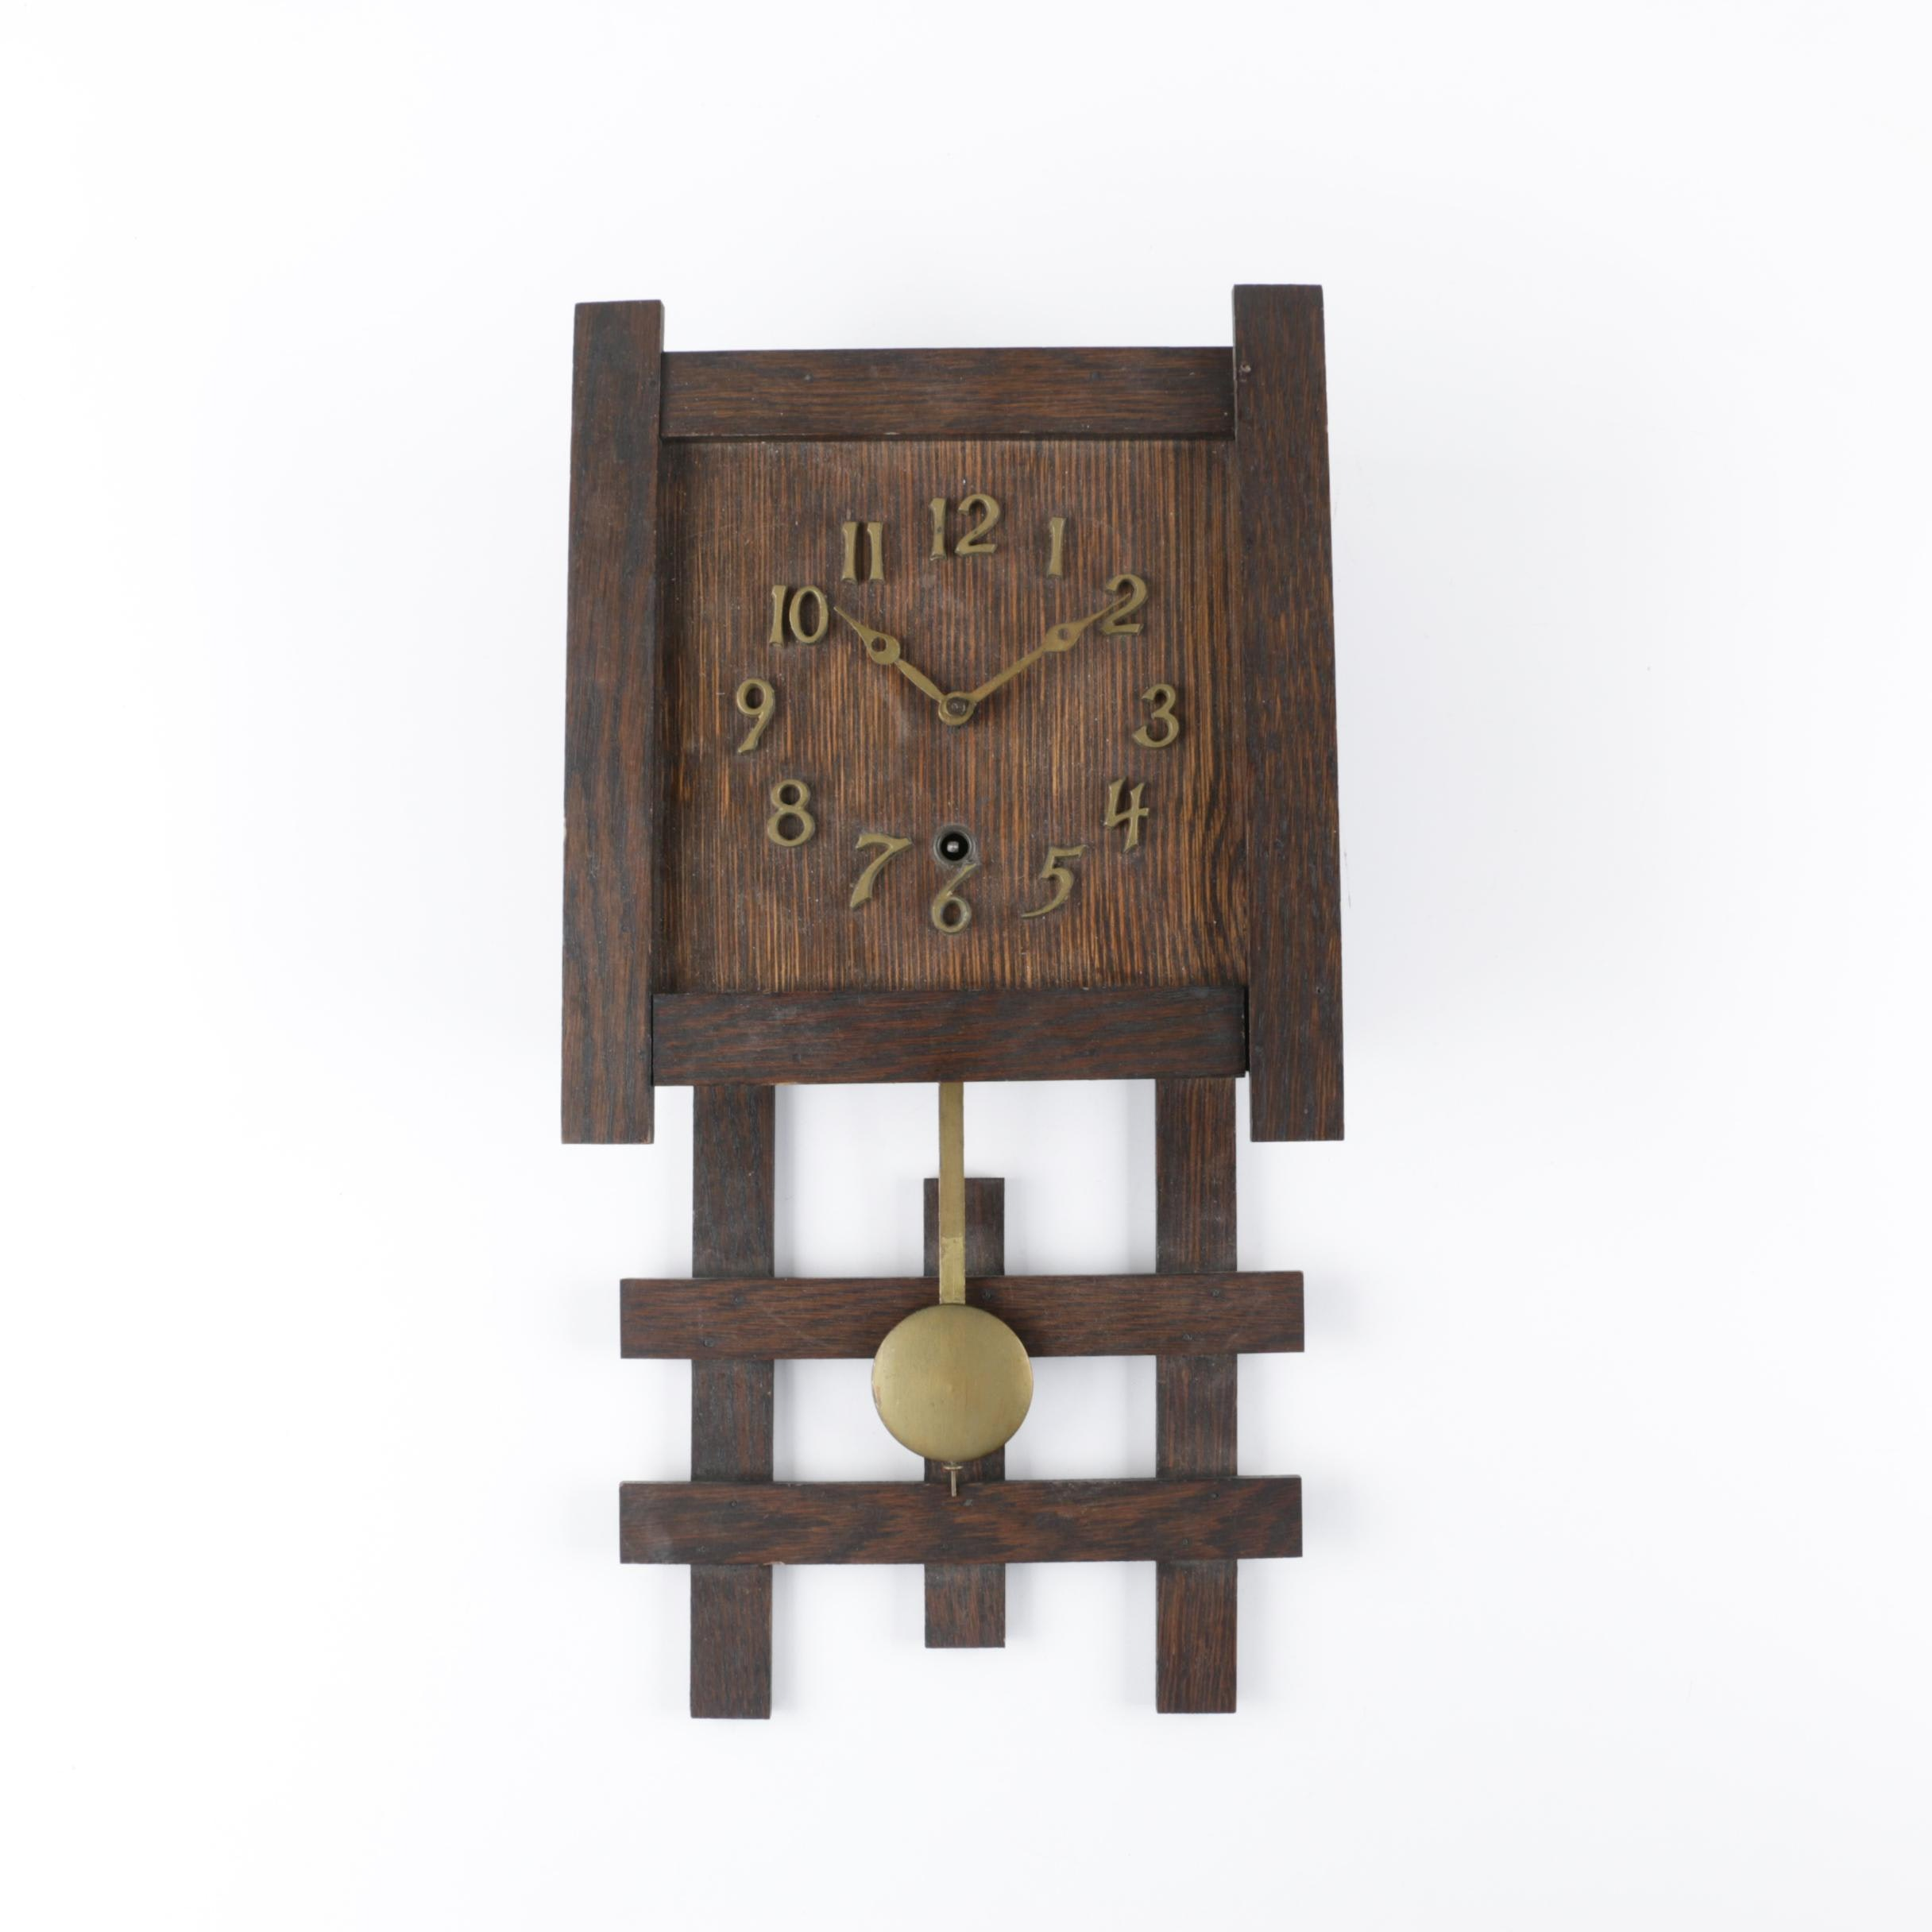 Sessions Mission Style Wooden Wall Clock